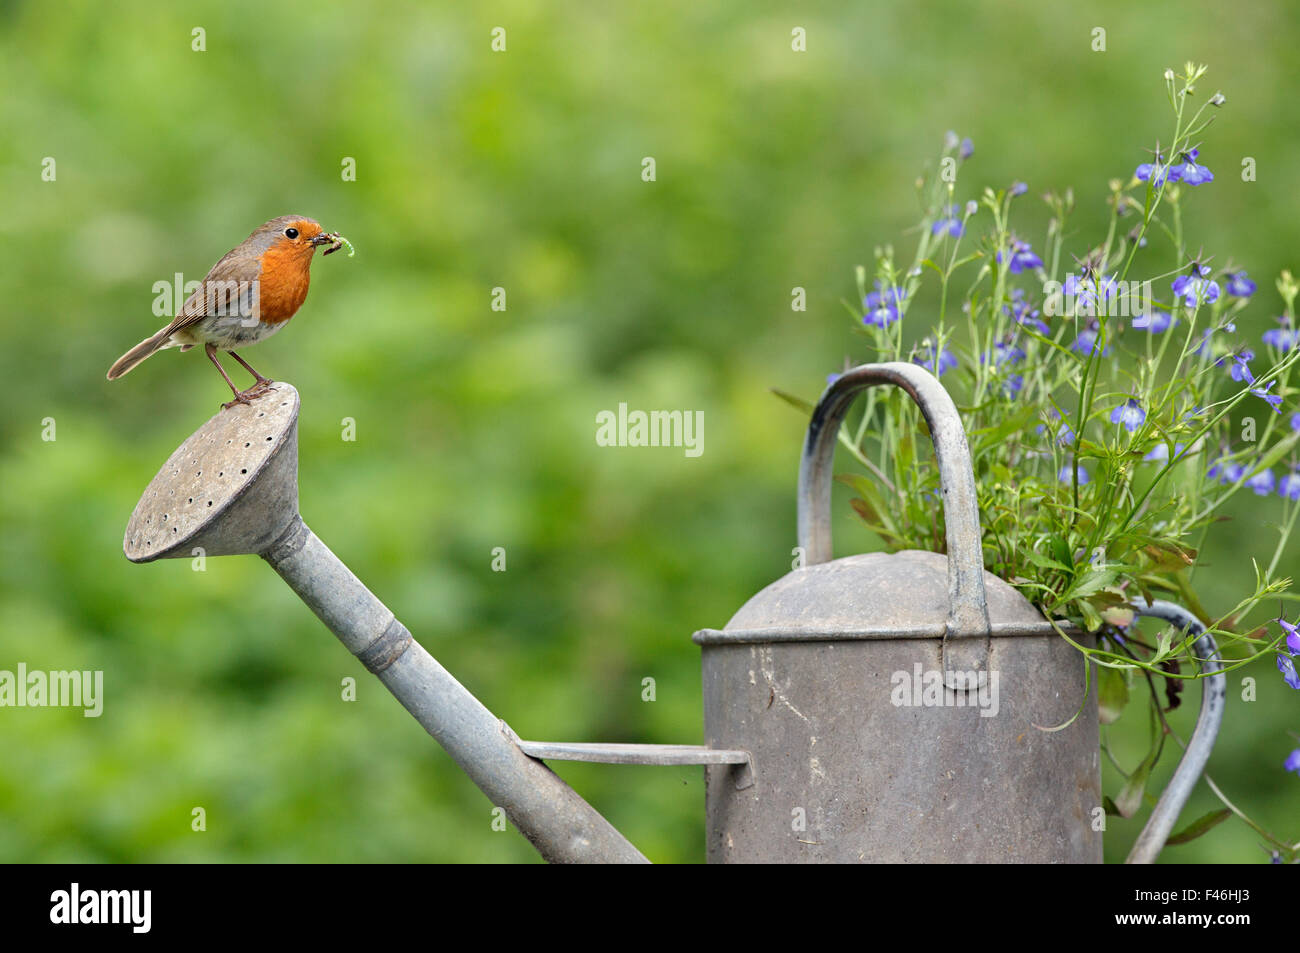 Robin (Erithacus rubecula) perched on watering can with invertebrate prey. Wiltshire, England, July. - Stock Image